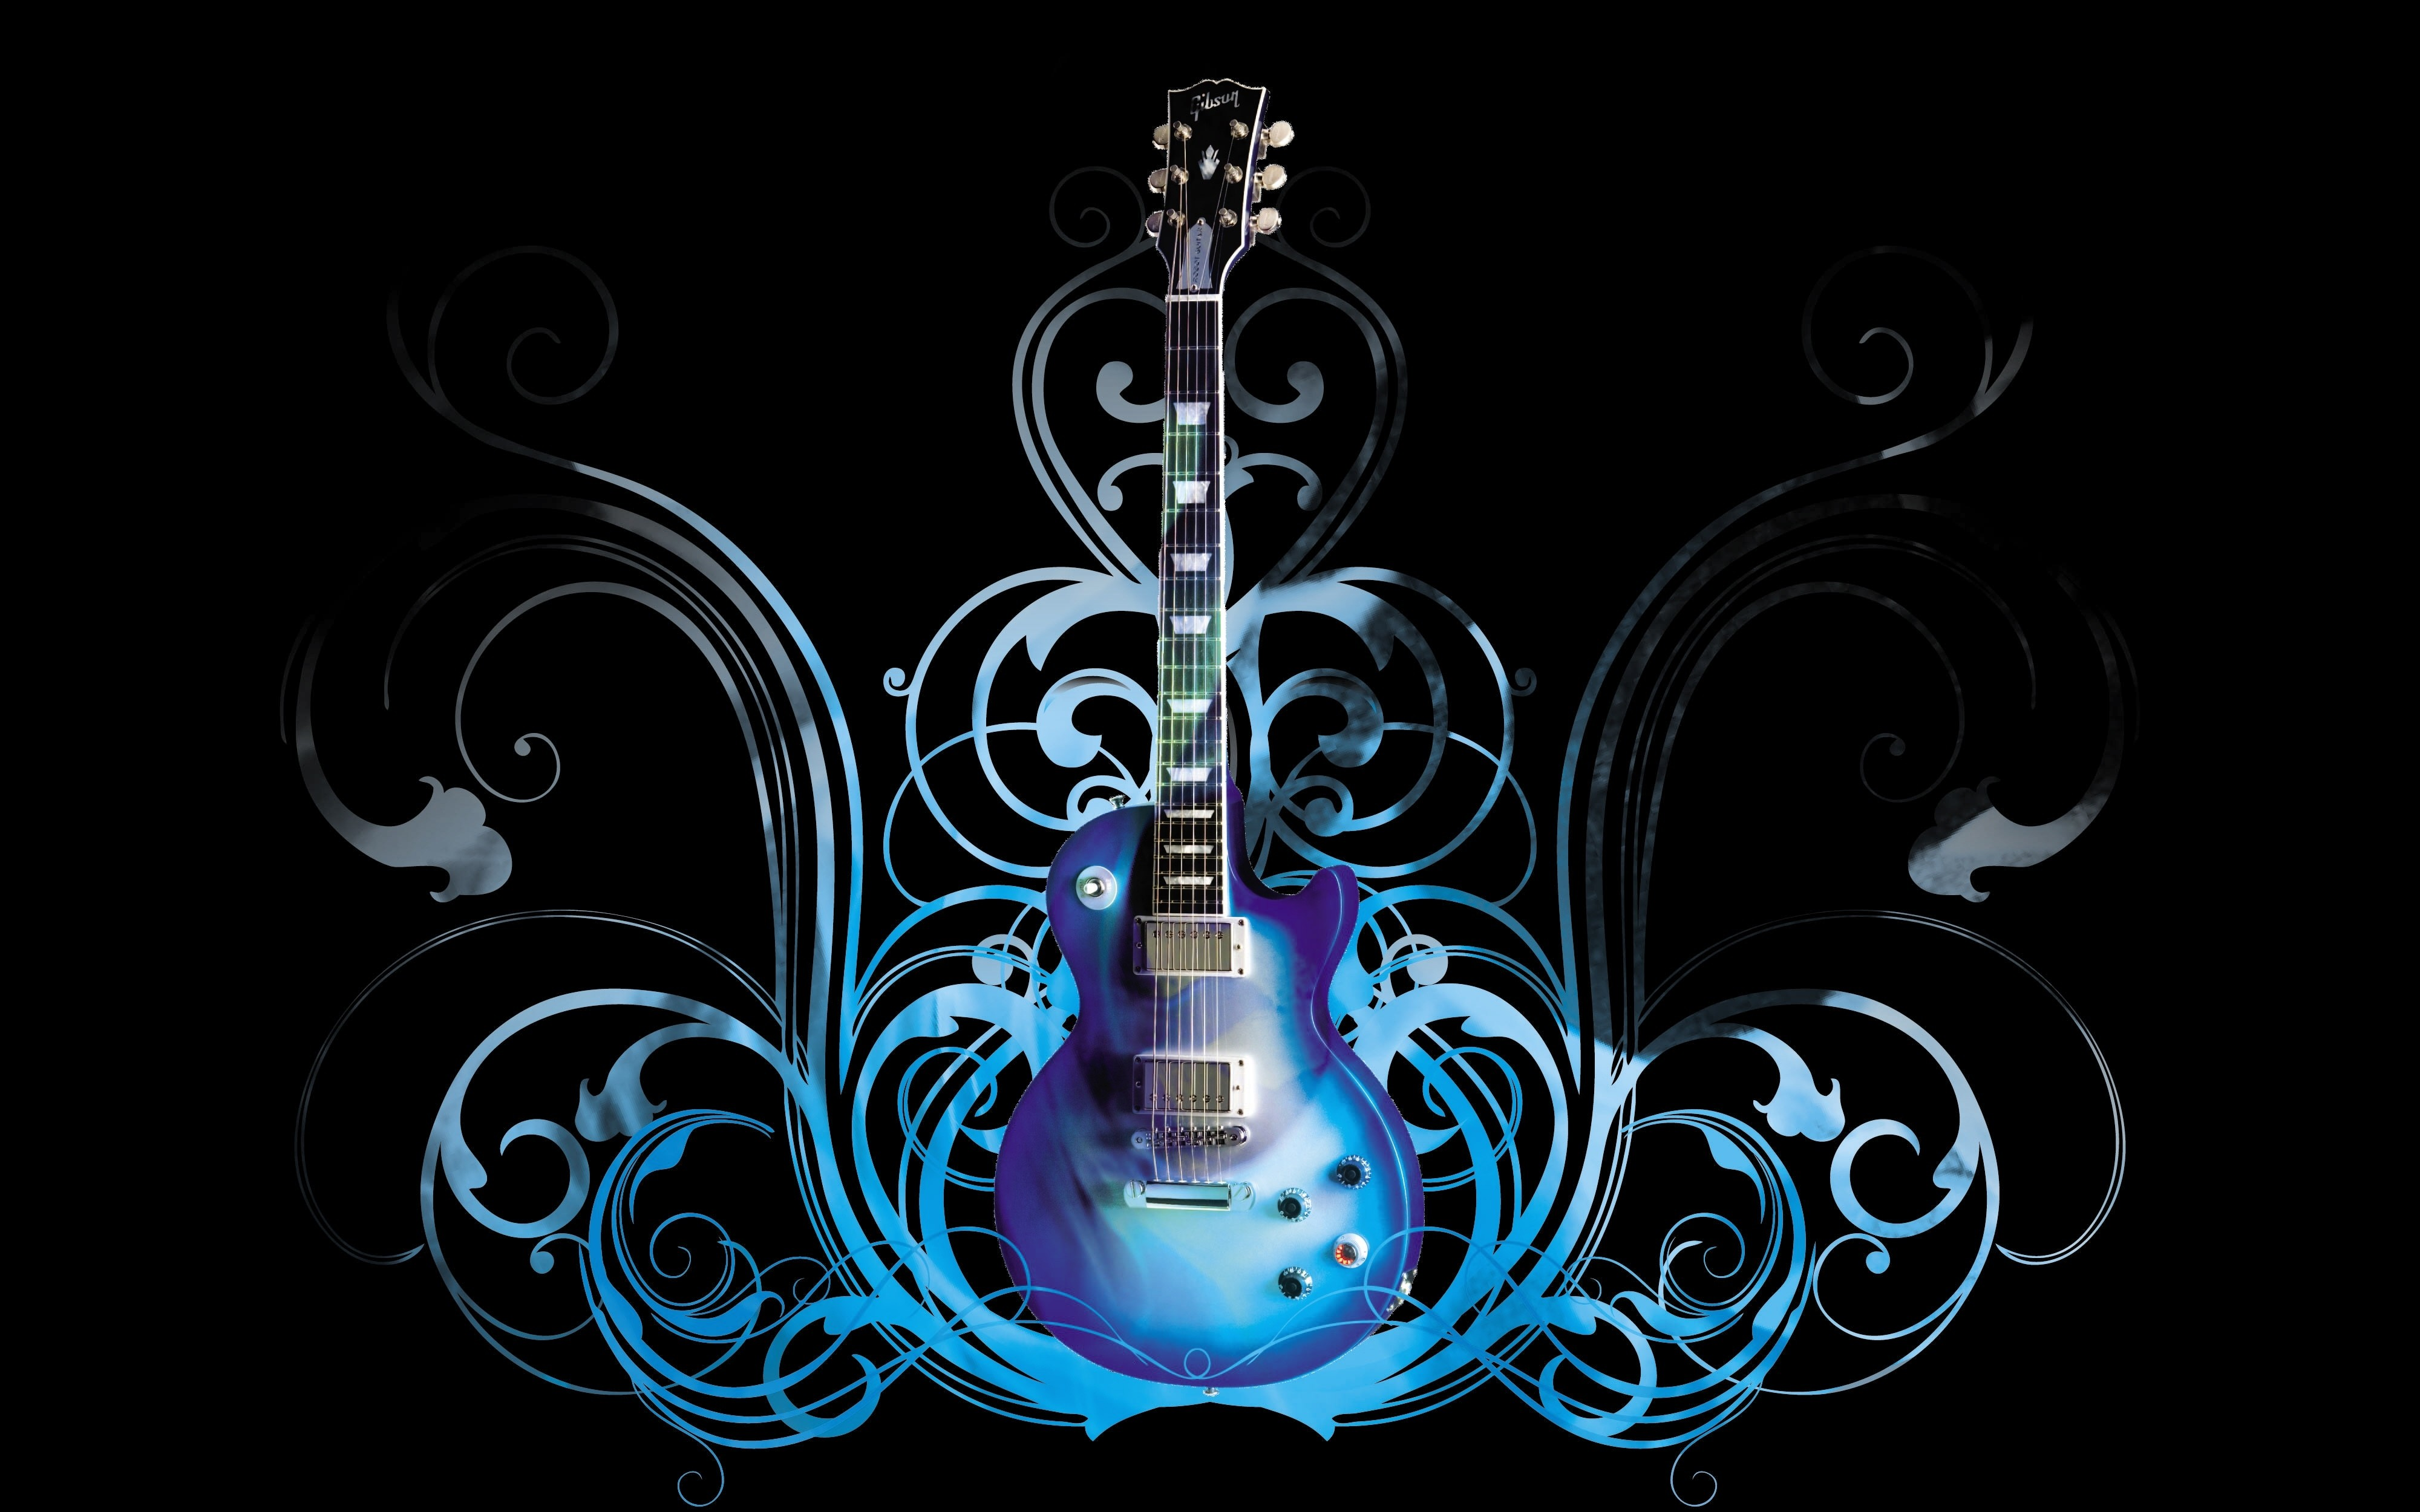 Wallpapers Hd 3d Music: Guitar Wallpapers High Quality